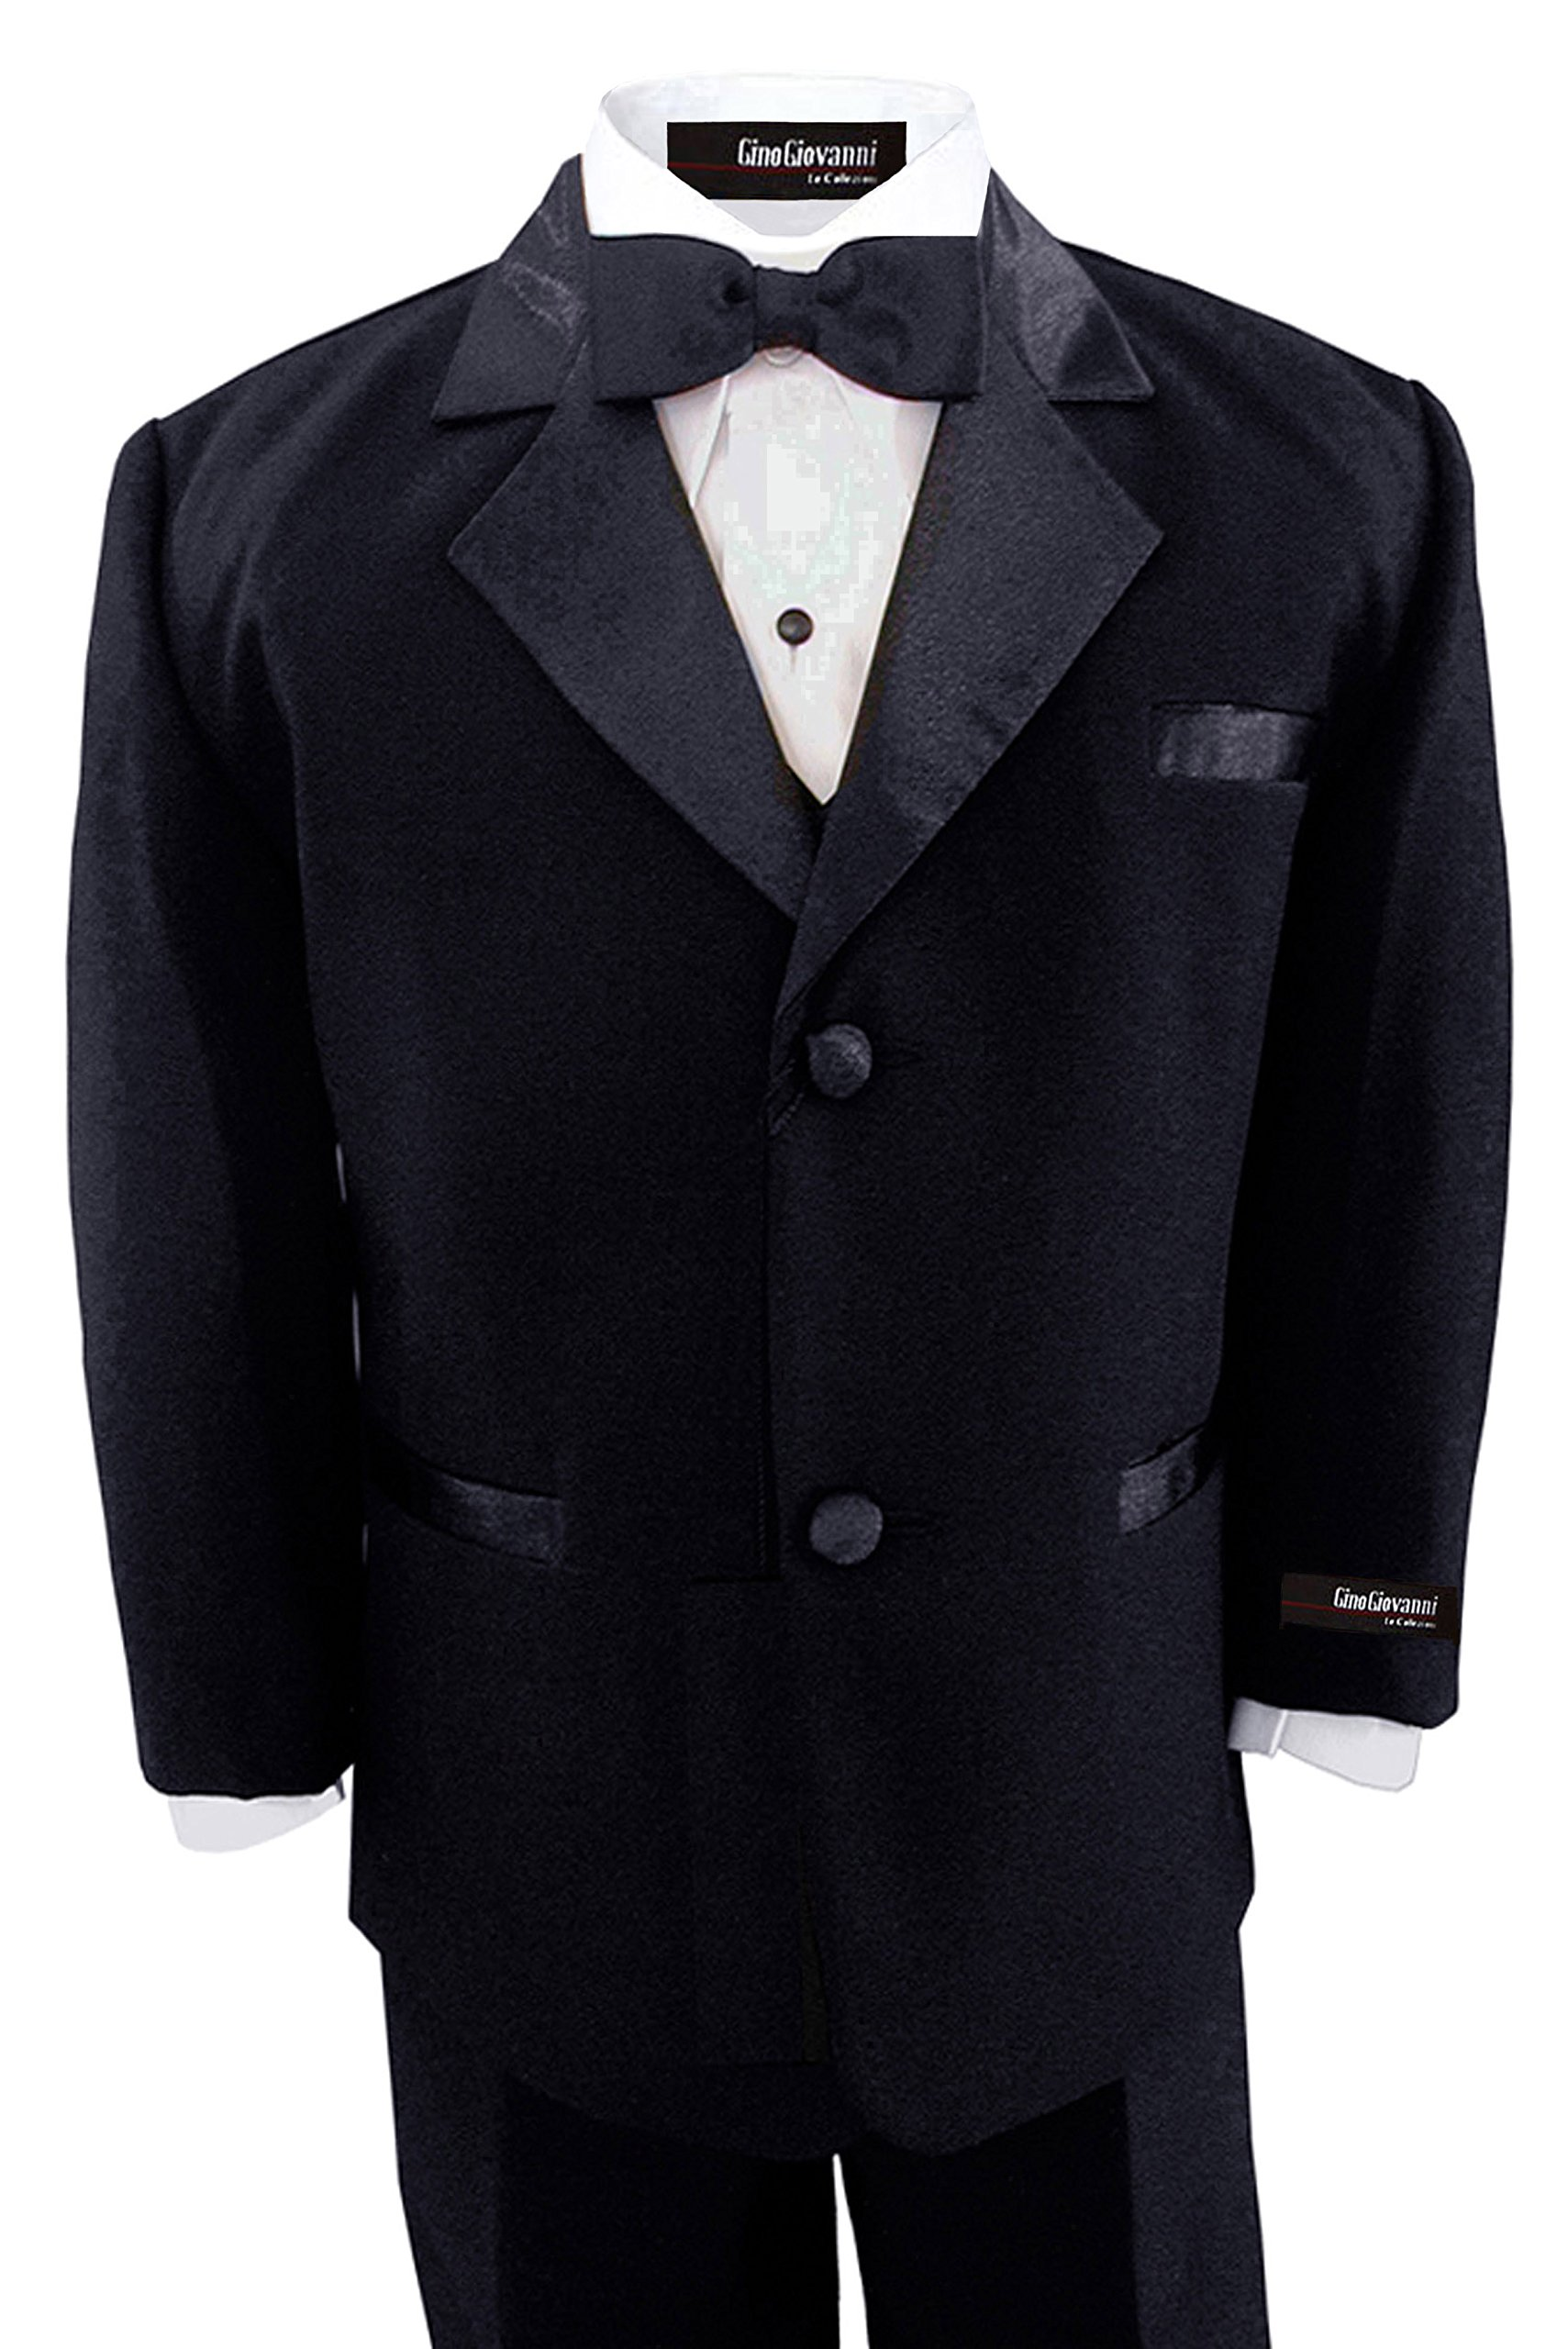 GINO GIOVANNI Brand Boys 5 Piece Deluxe Black Tuxedo Suit Toddler Sizes (Toddler 4T)